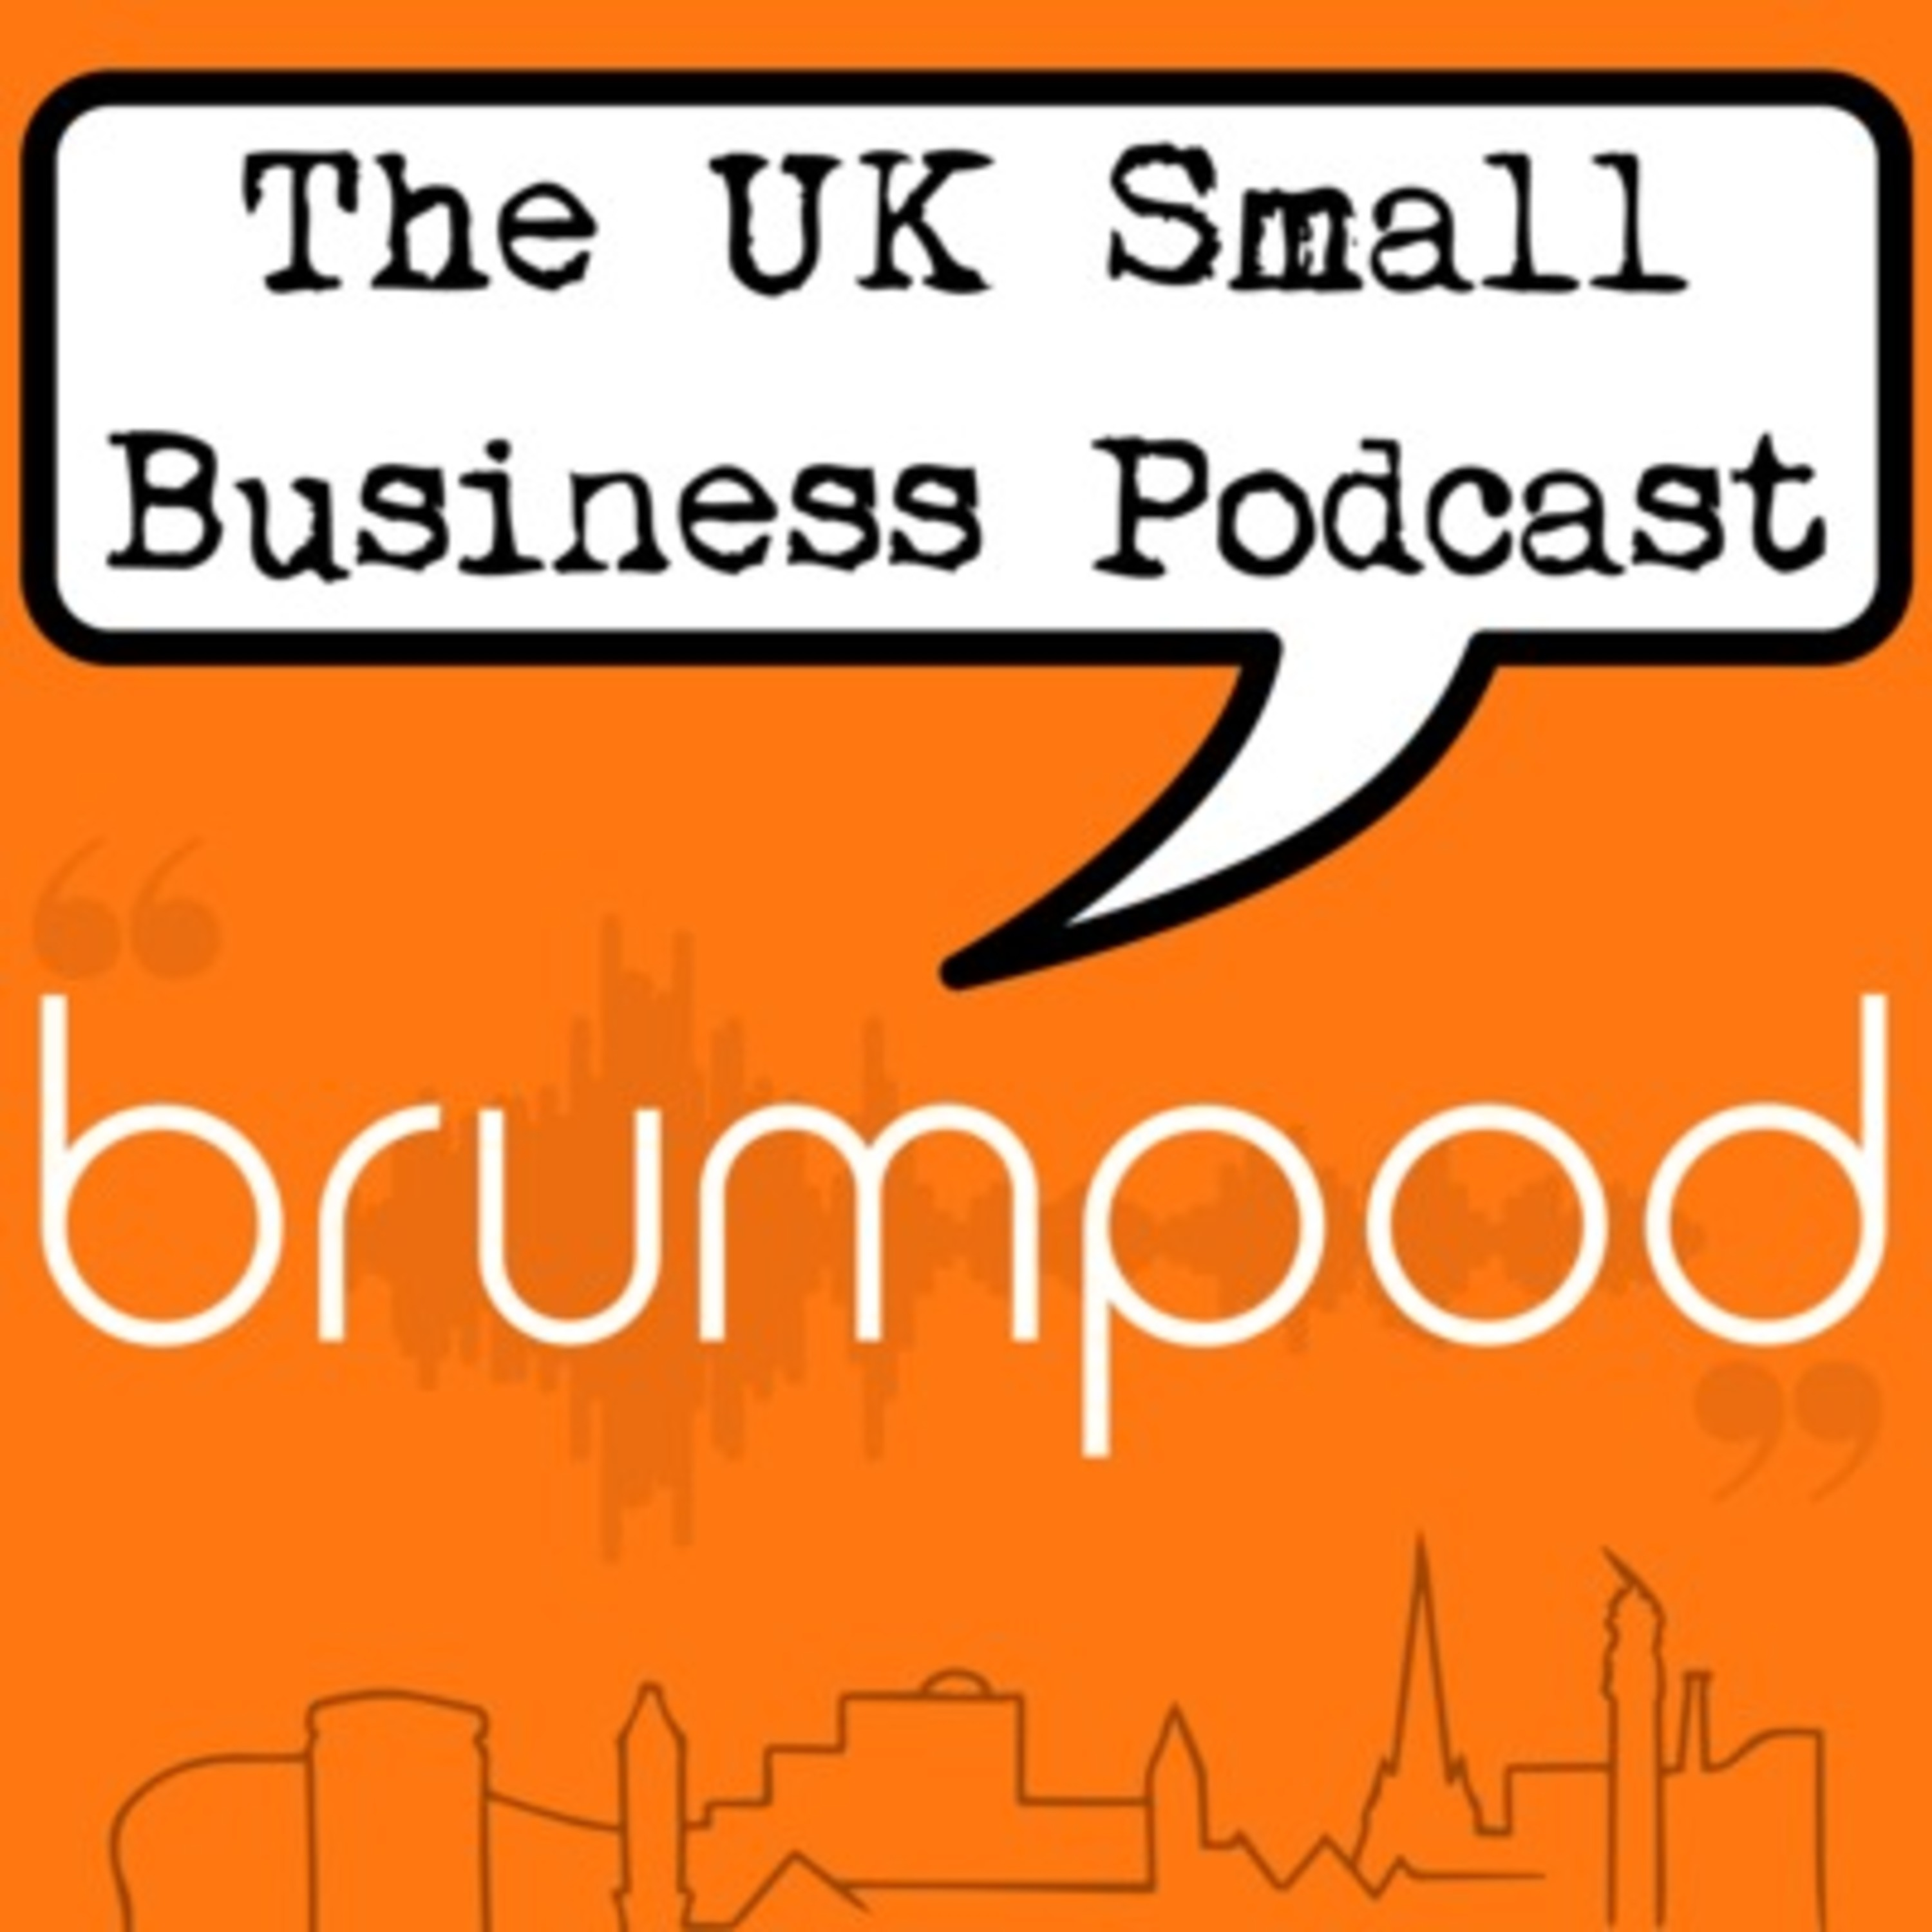 BrumPod013: Our Old Friend GDPR - It Hasn't Gone Away! PLUS Downtime In Your Business For Good Mental Health